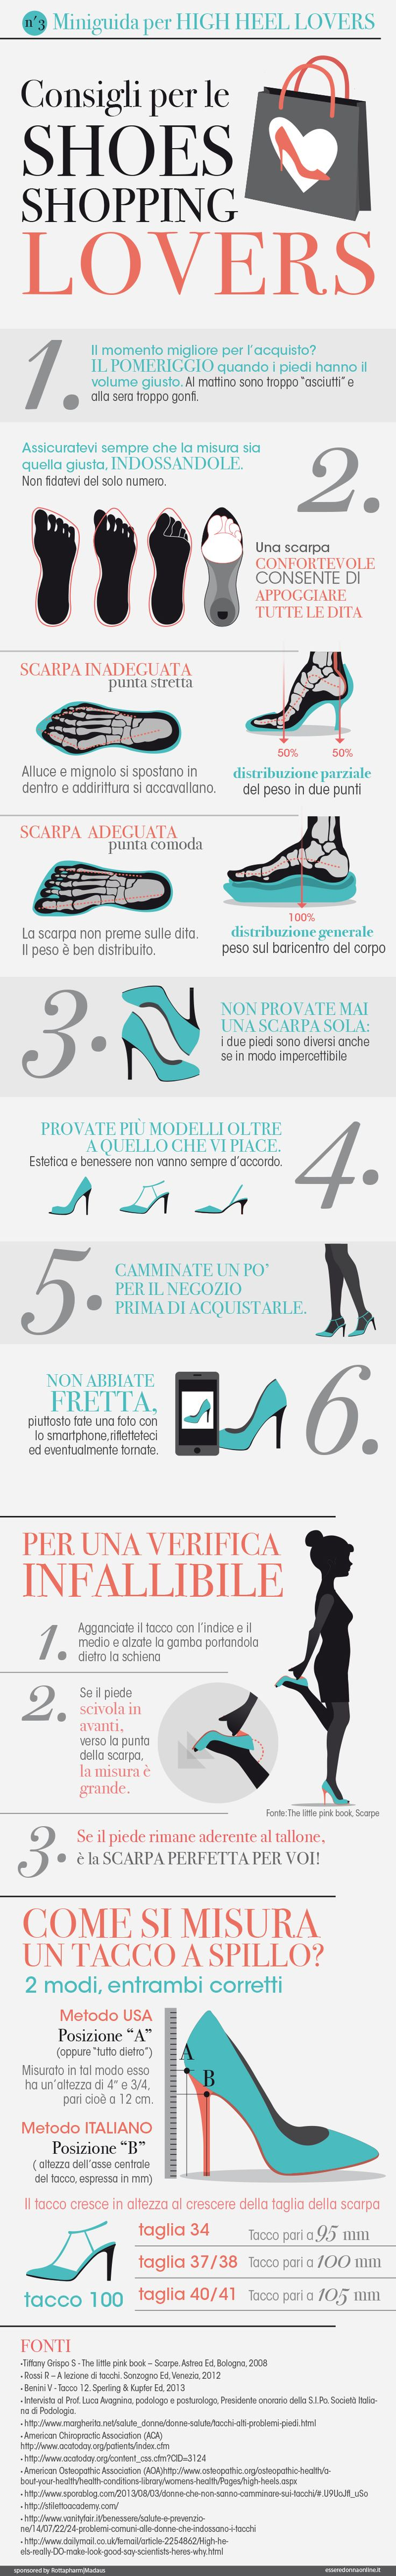 Consigli per le Shoes Shopping Lovers - infographics designed for esseredonnaonline.it- illustrated by Alice Kle Borghi, kleland.com